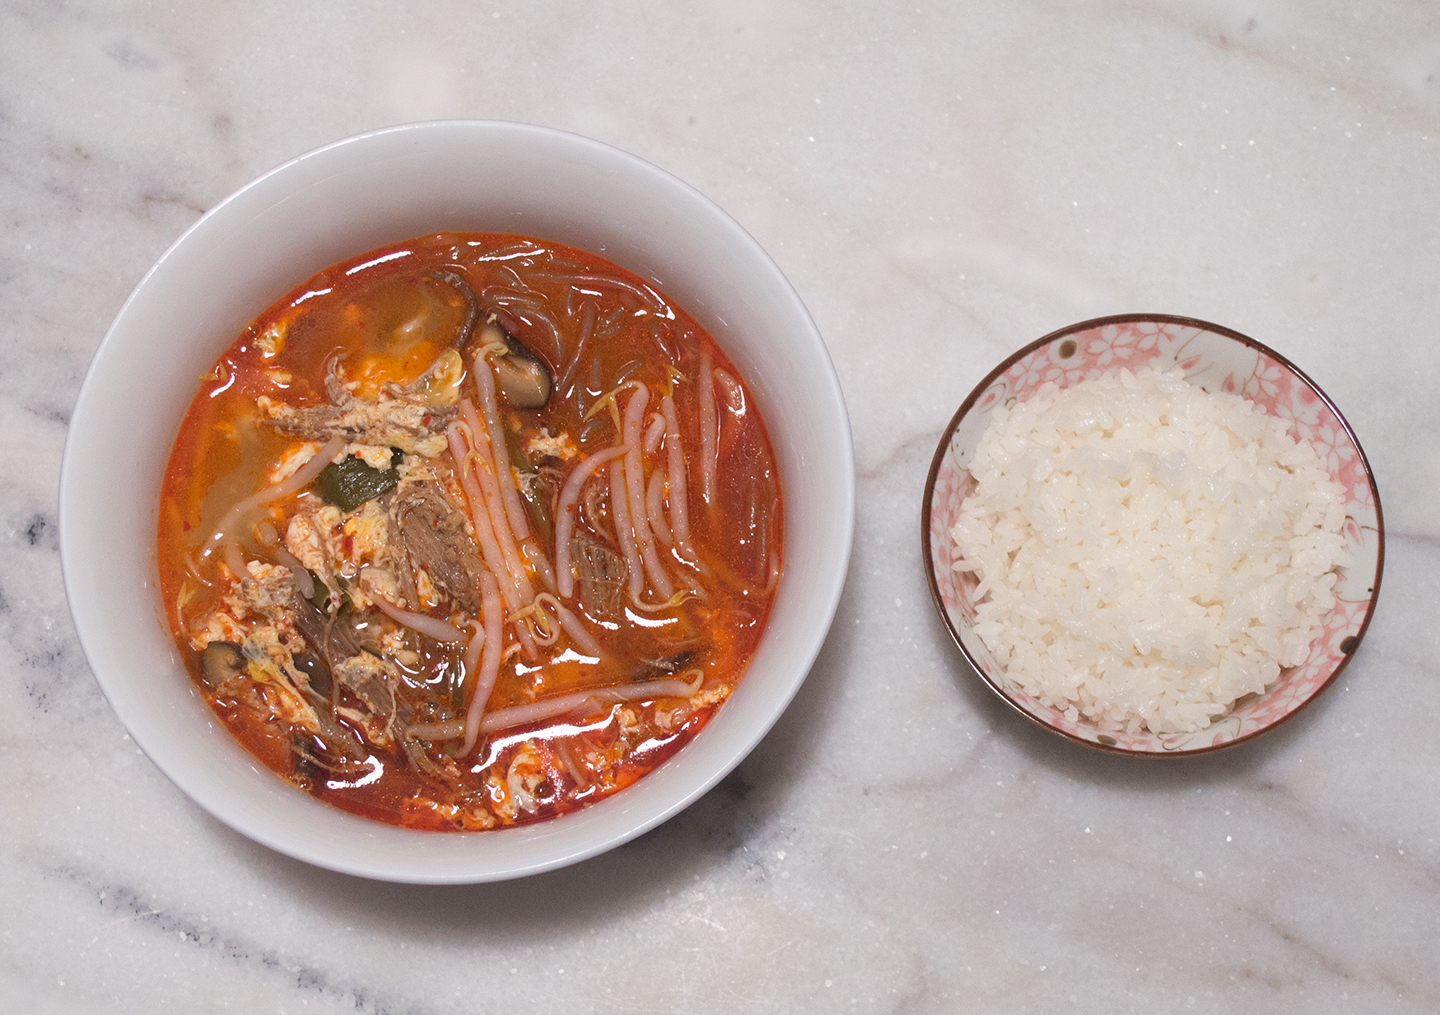 Yukgaejang (육개장) - Spicy Beef Brisket Soup with Vegetables